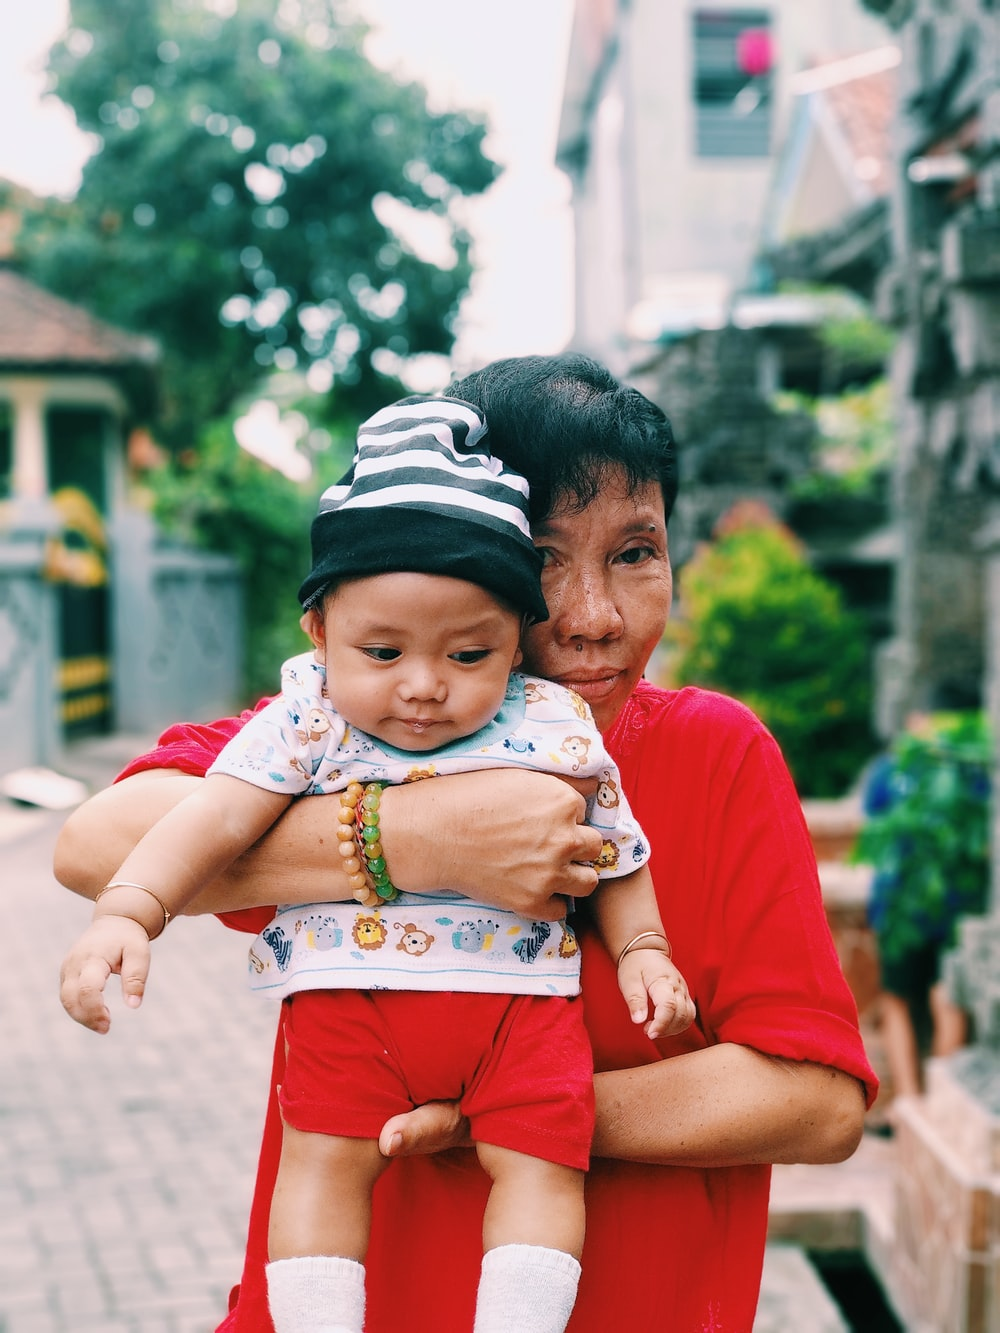 woman carrying a baby near houses at daytime